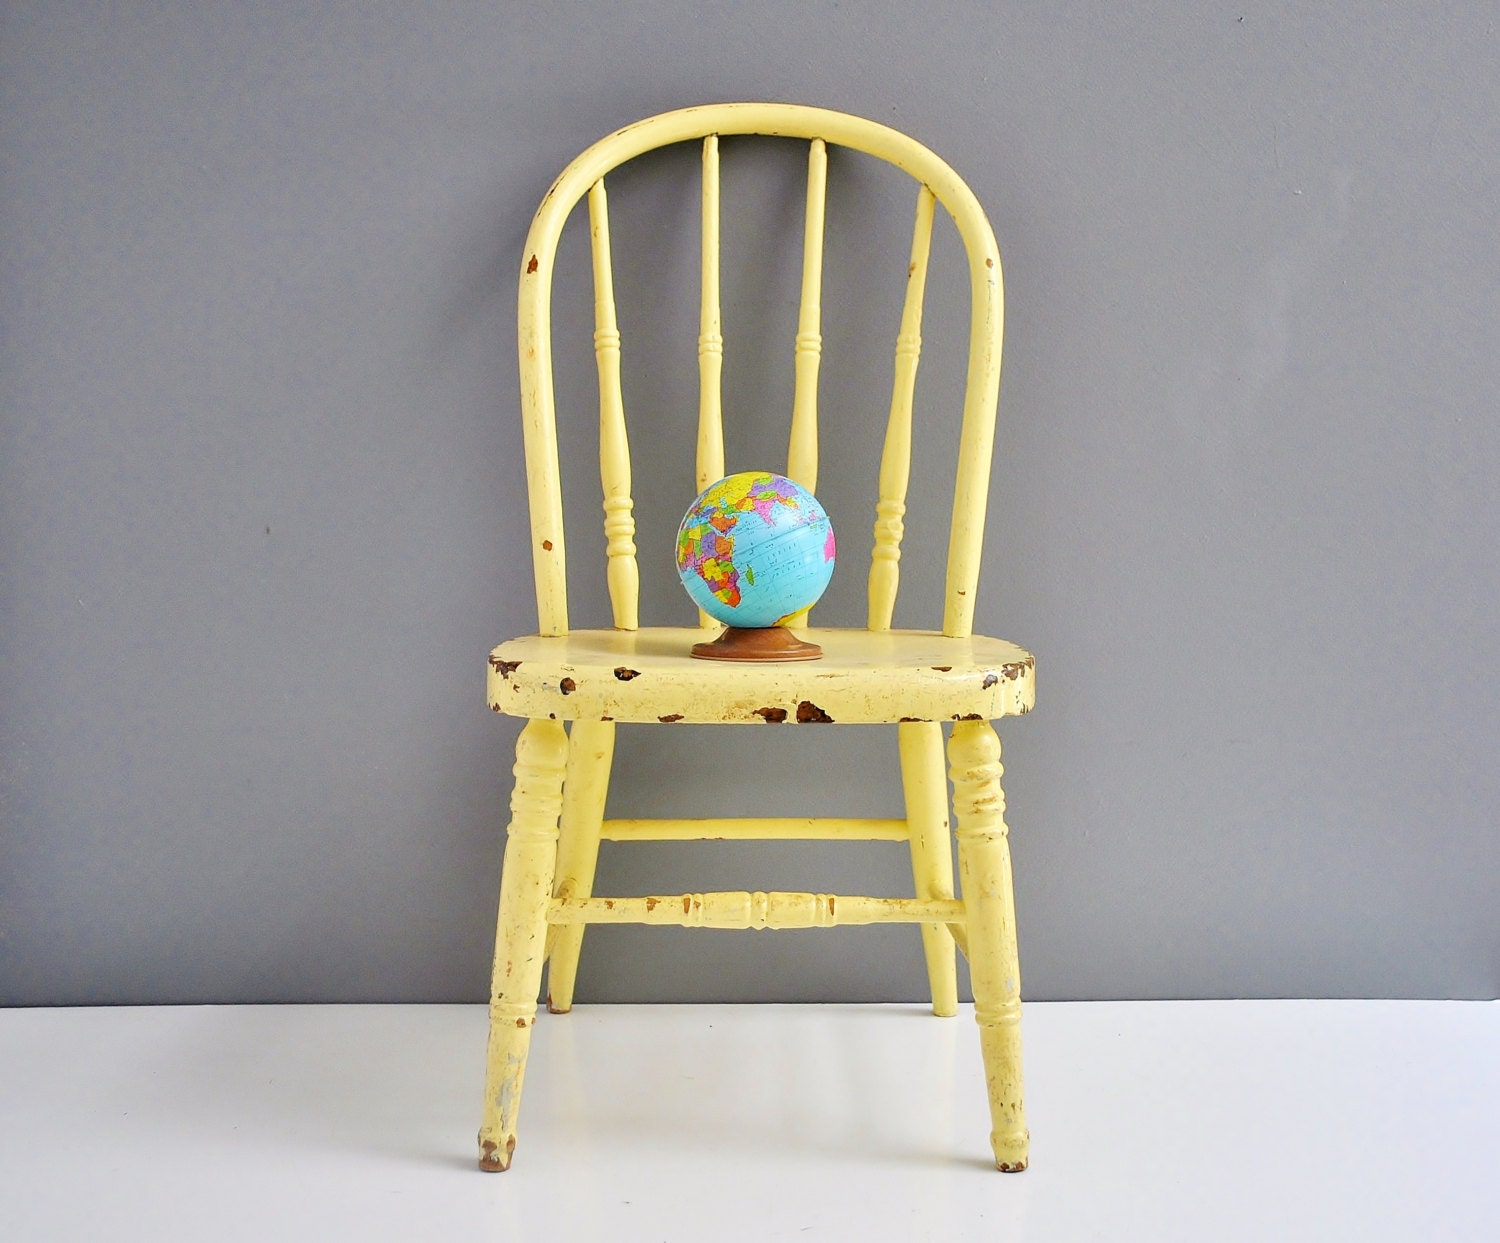 Vintage wooden child s chair spindle back yellow